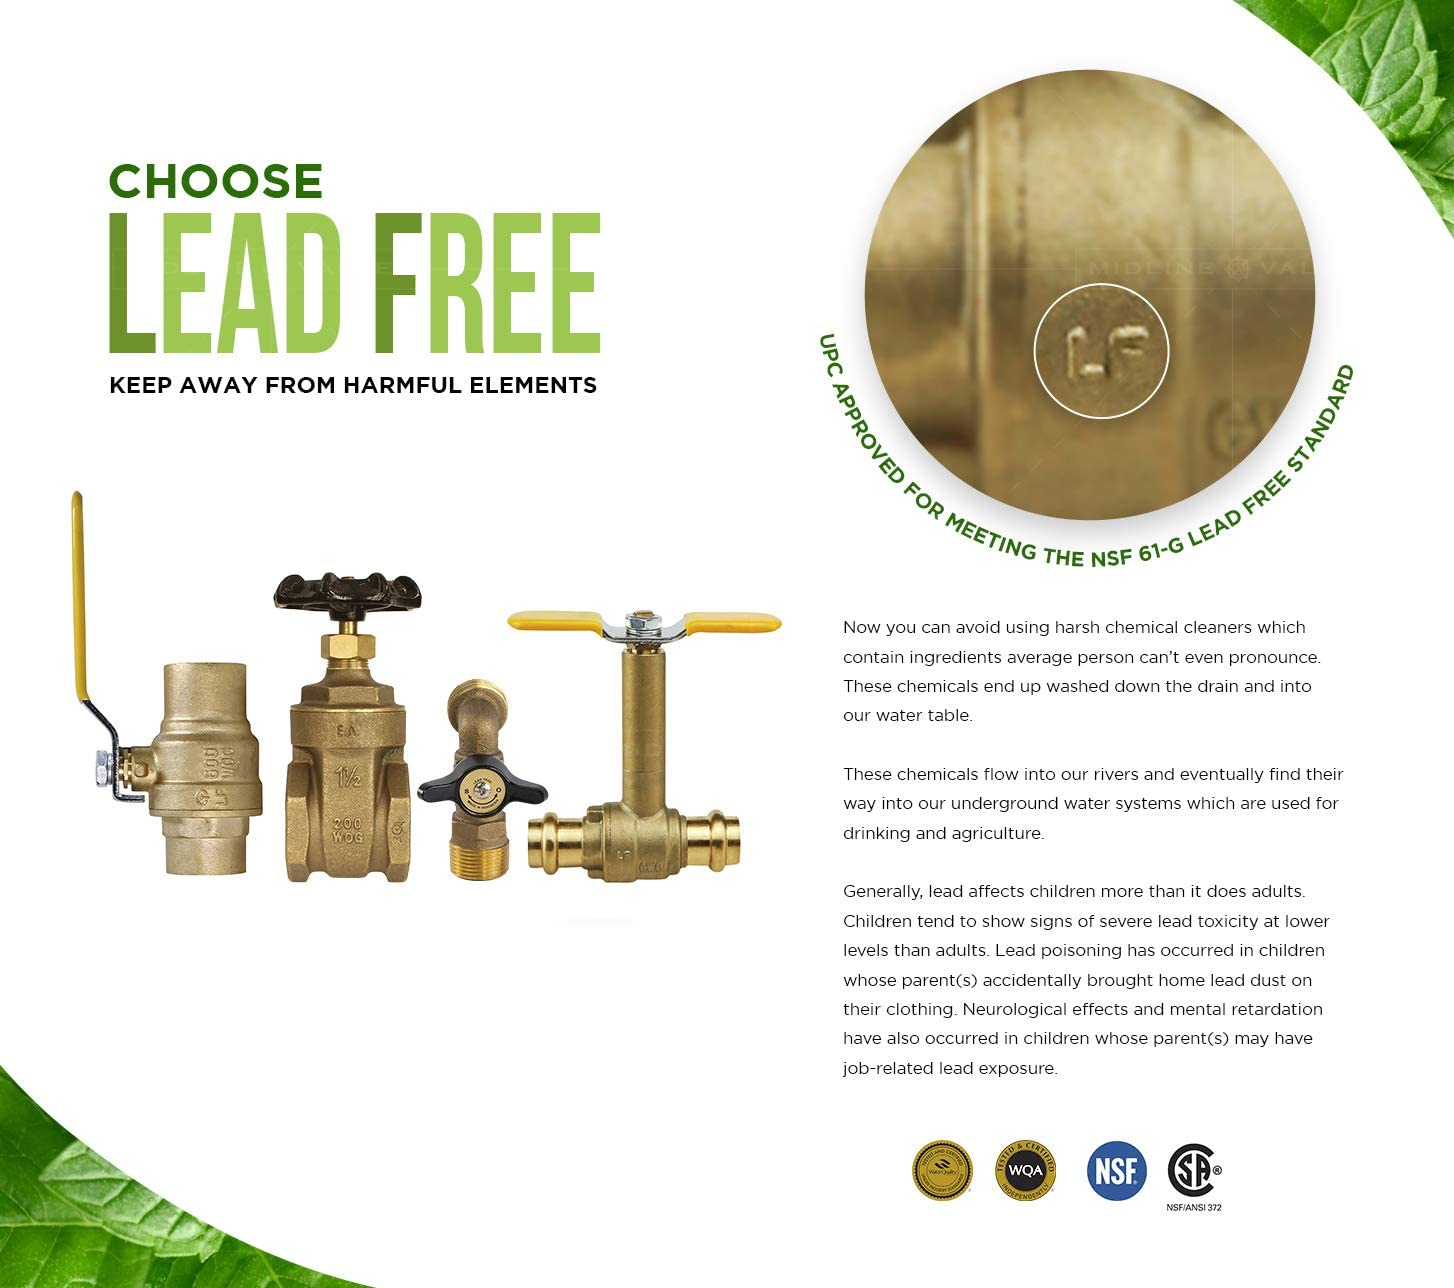 Midline Valve 91212QS-OM Water Supply Stop Valve with Quarter Turn Control Key; Lead Free; One Piece; Angle Shut-off for Toilet SWT x 3//8 in Dishwasher; 1//2 in COMP; Chrome Plated Brass Sink